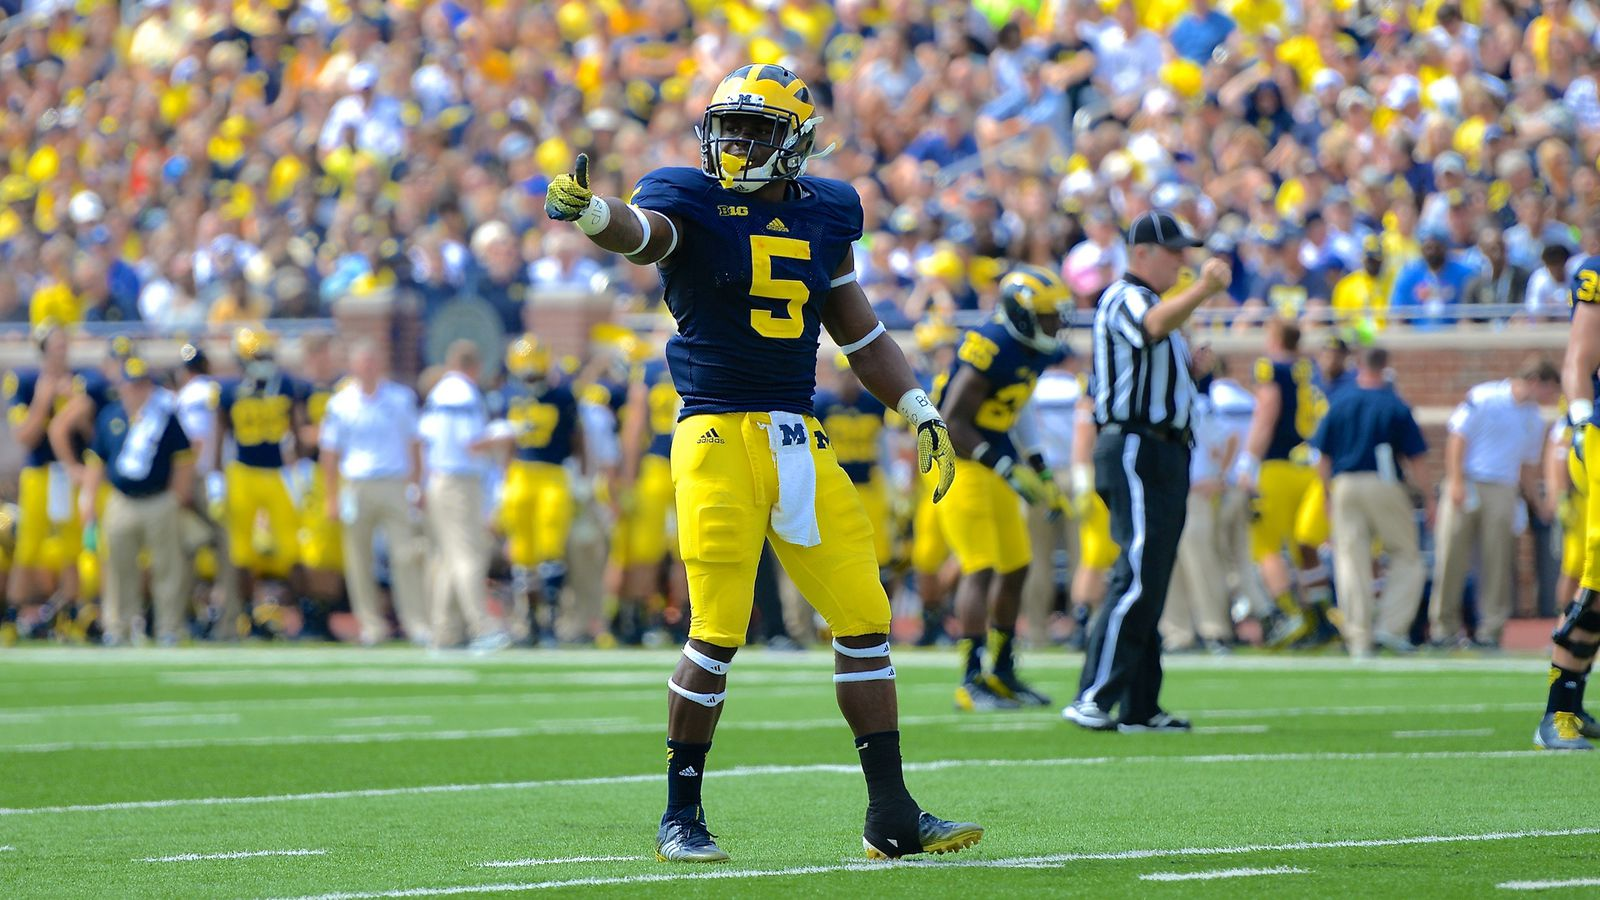 Michigan Football Spring Game: The Return of Jabrill ...